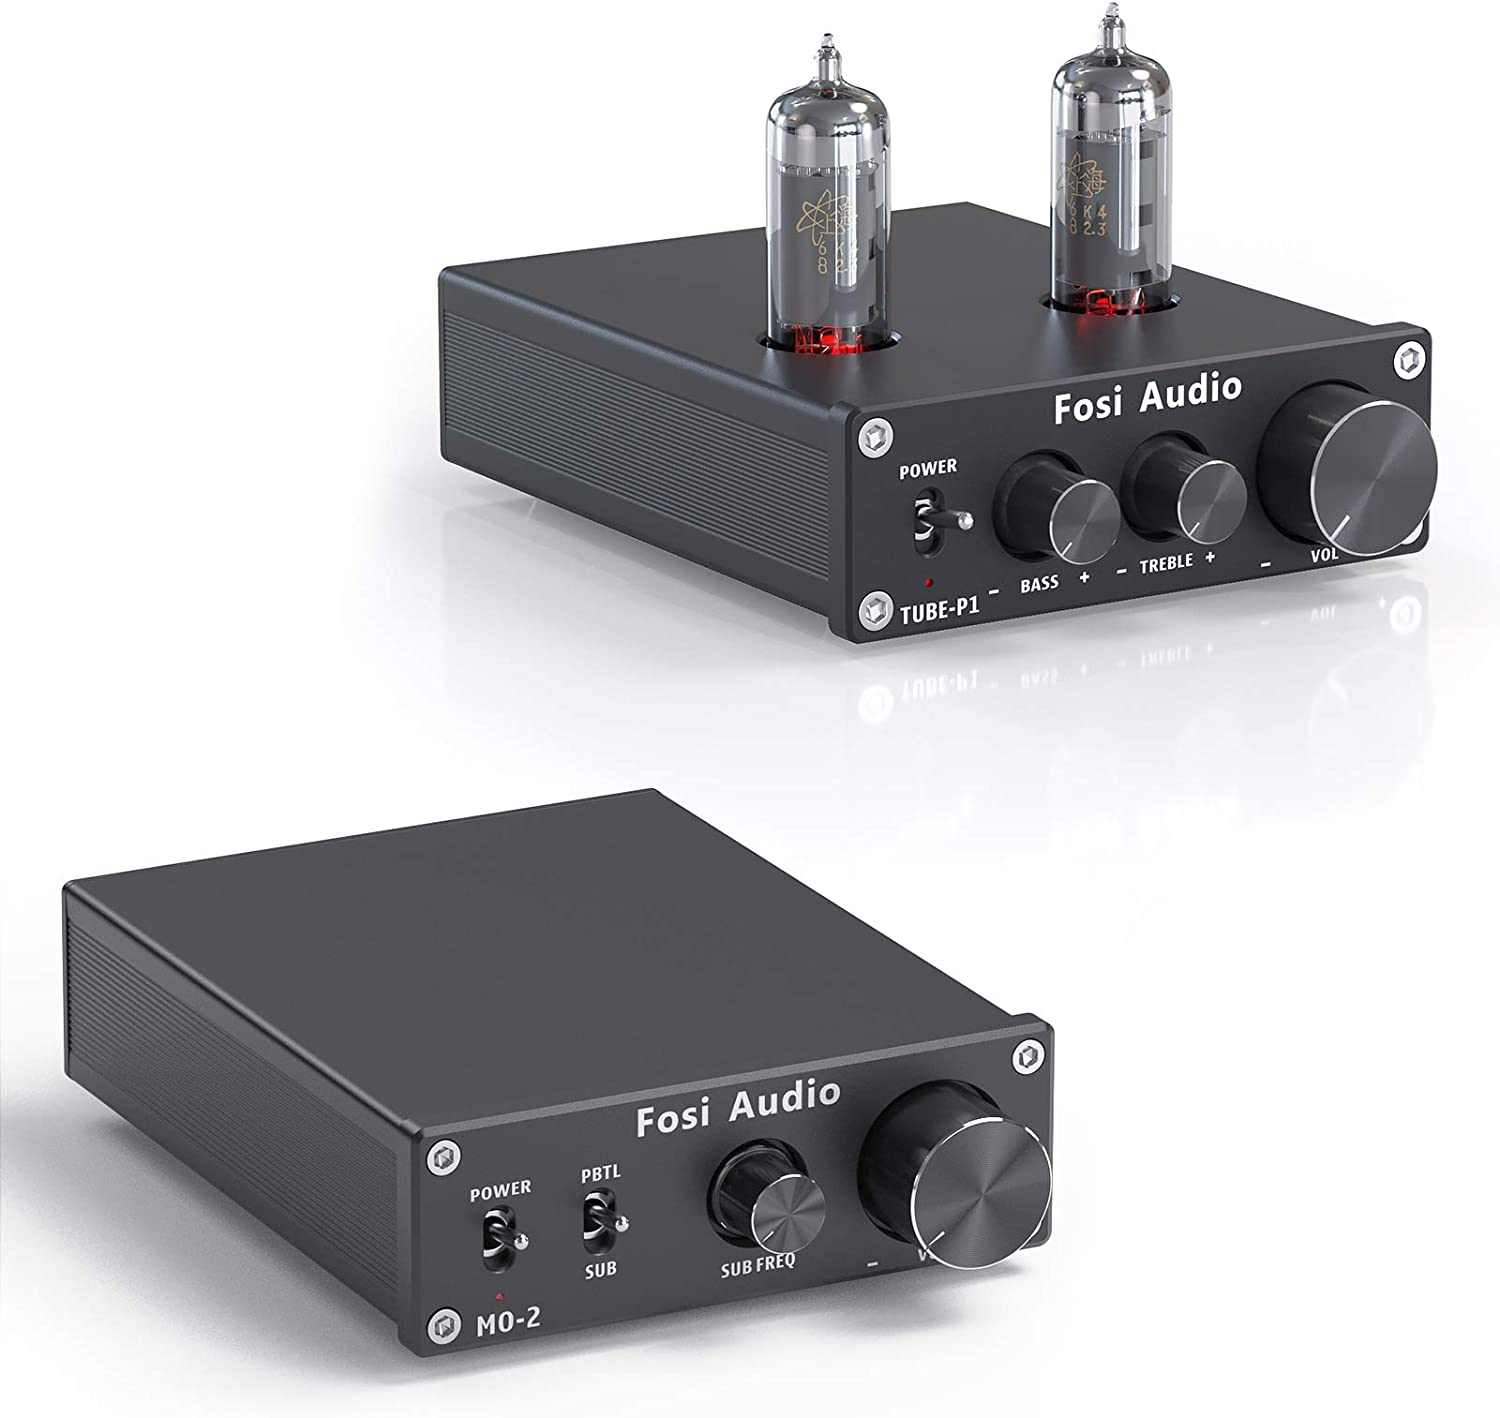 Fosi Audio M02 Subwoofer Amplifier Mono Channel Home Theater Power Amp 100W and P1 Tube Pre-Amplifier